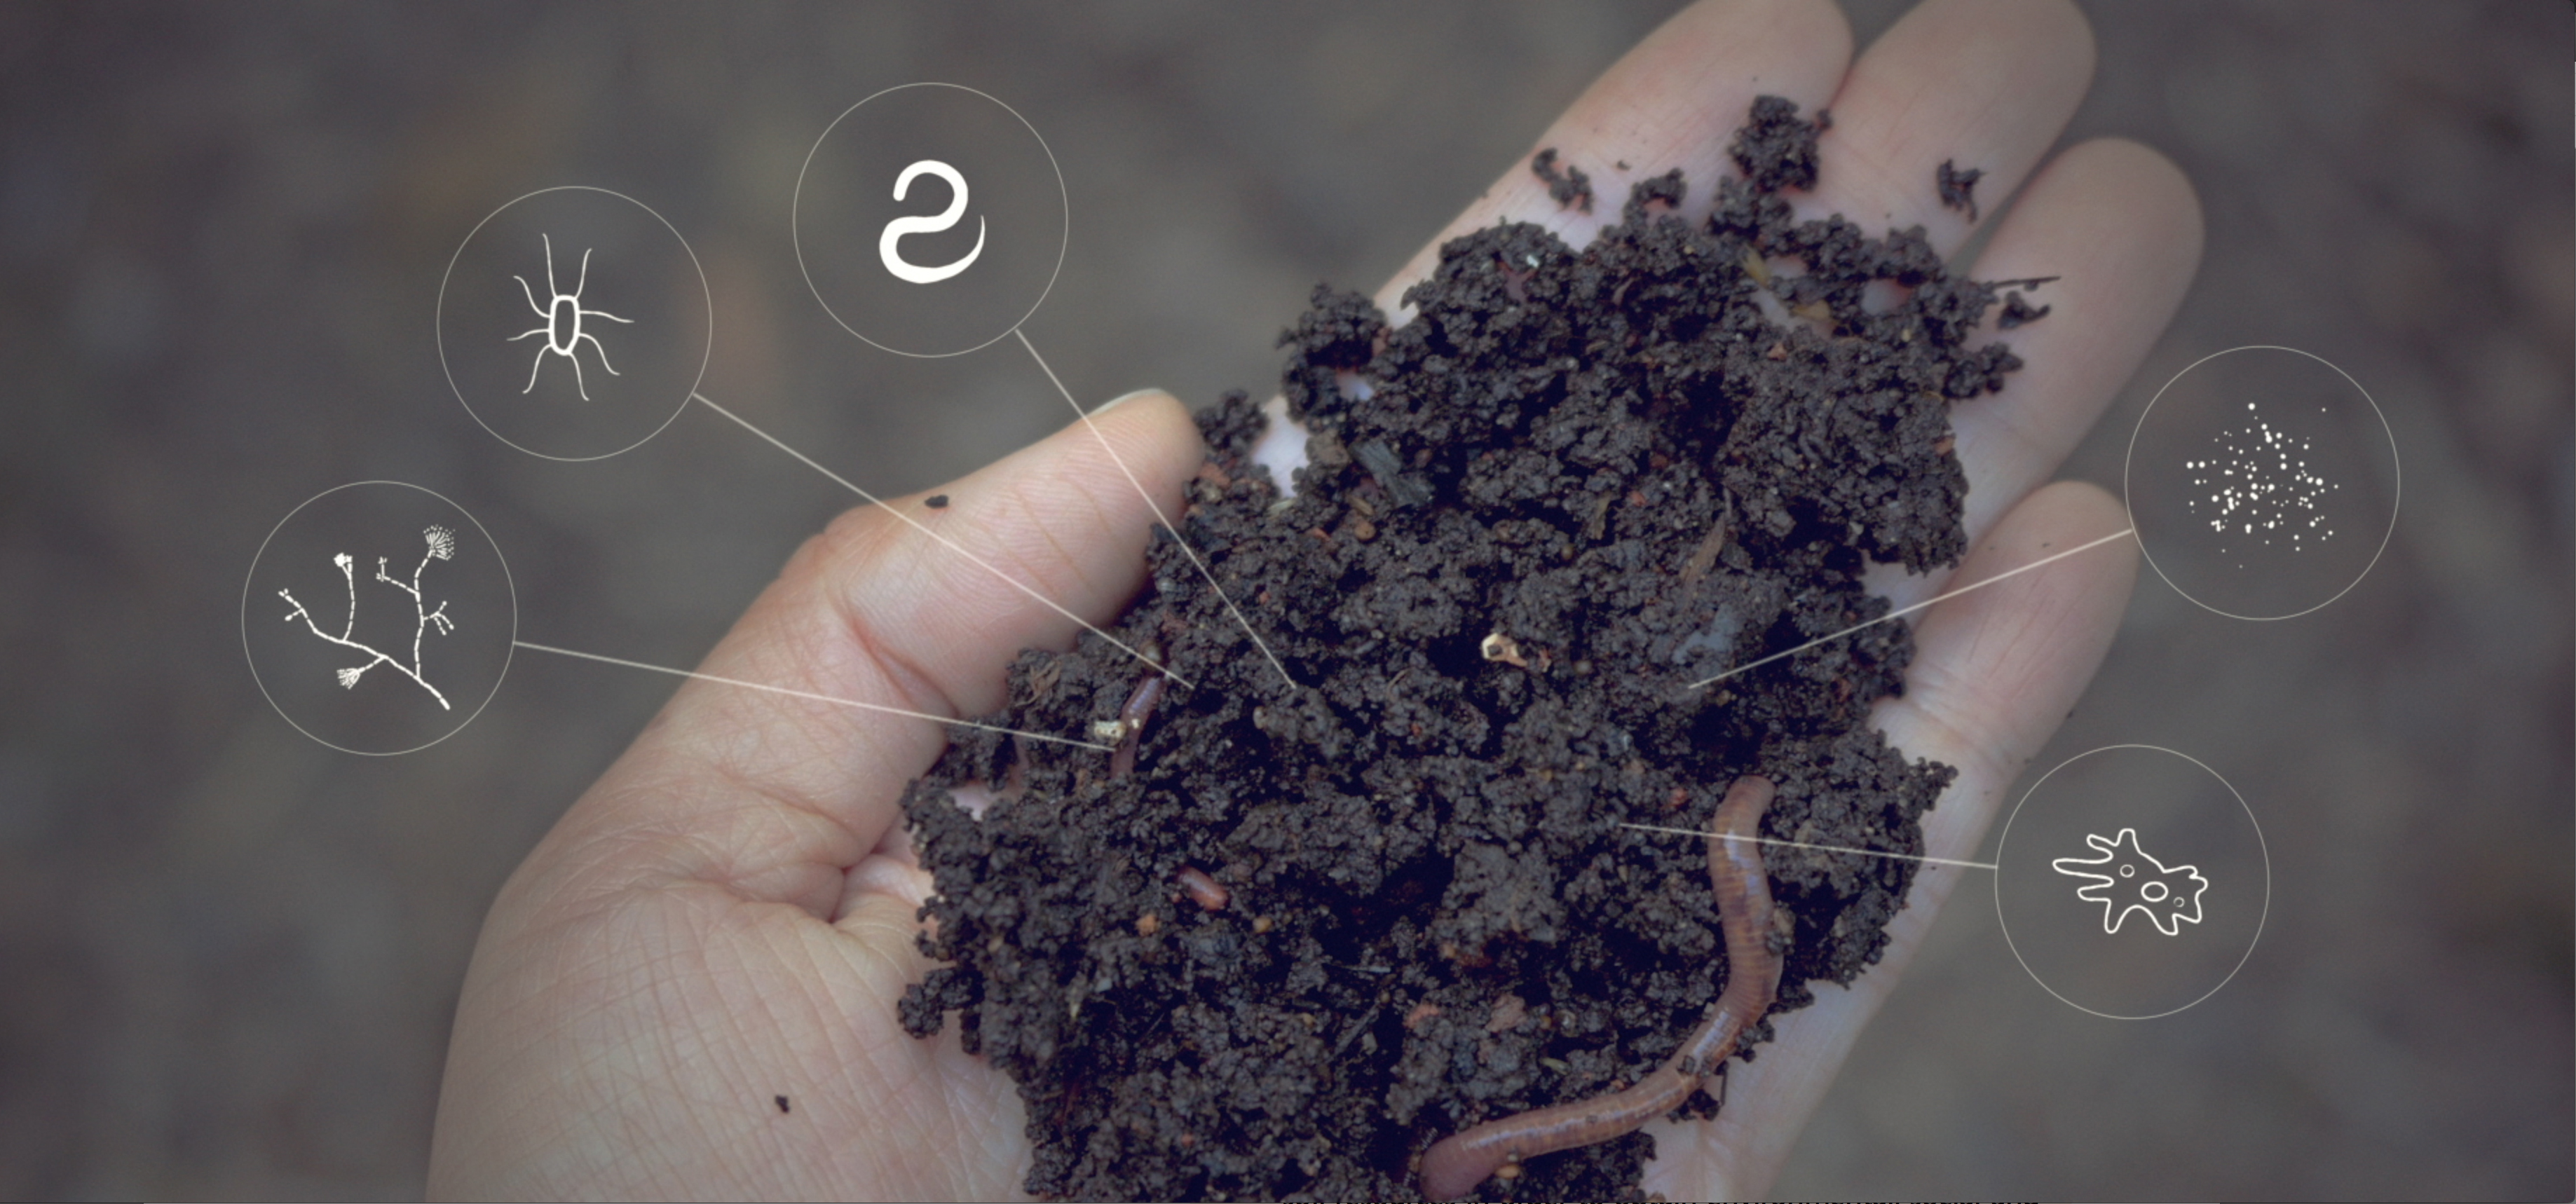 Center for food safety video cfs videos soil for Organic soil solutions